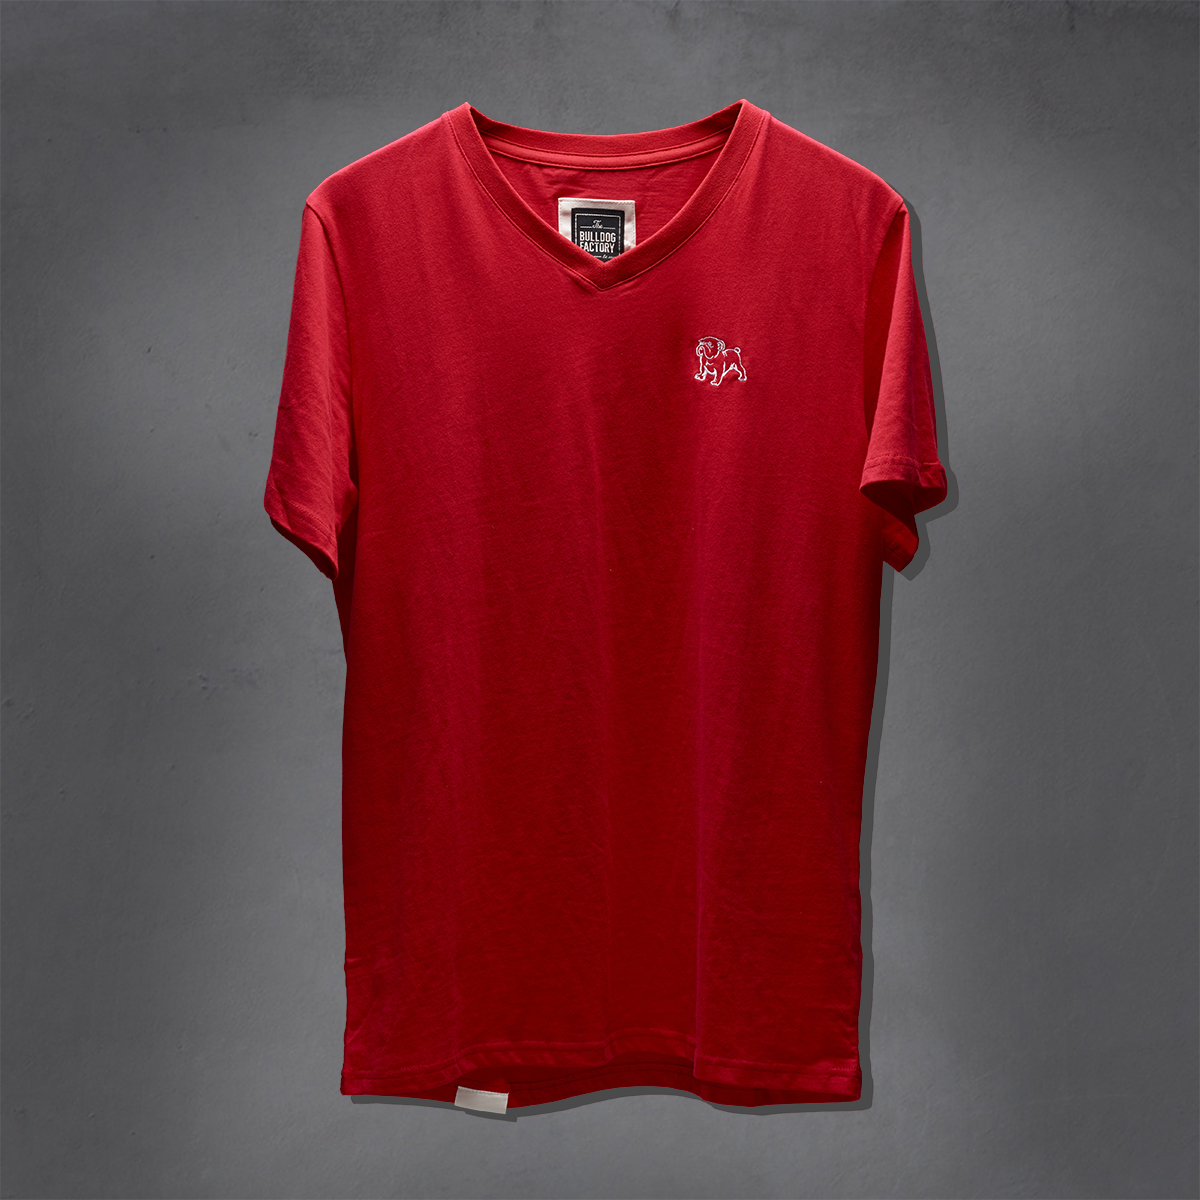 Guys Heritage V-Neck Ts - Cherry Tomato